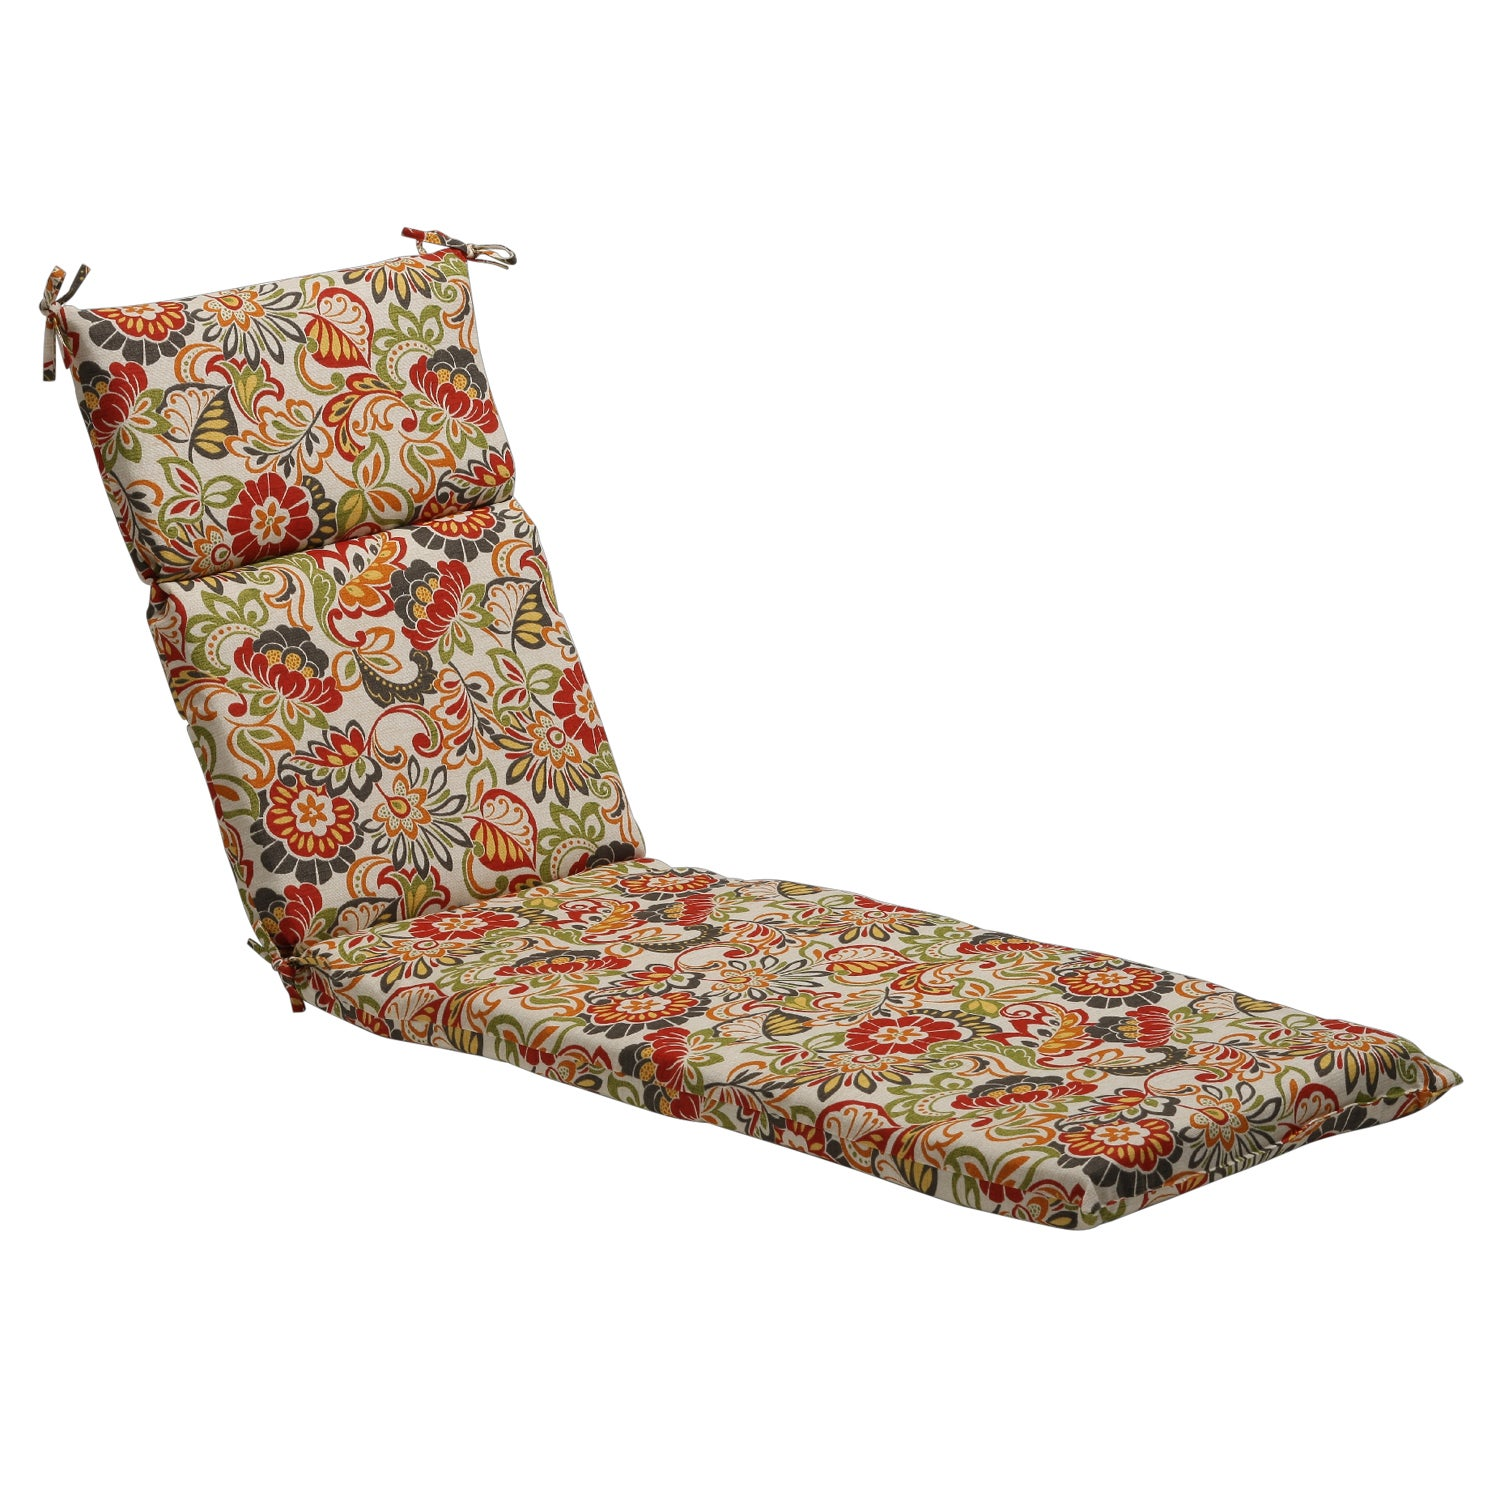 Multicolored Floral Outdoor Chaise Lounge Cushion